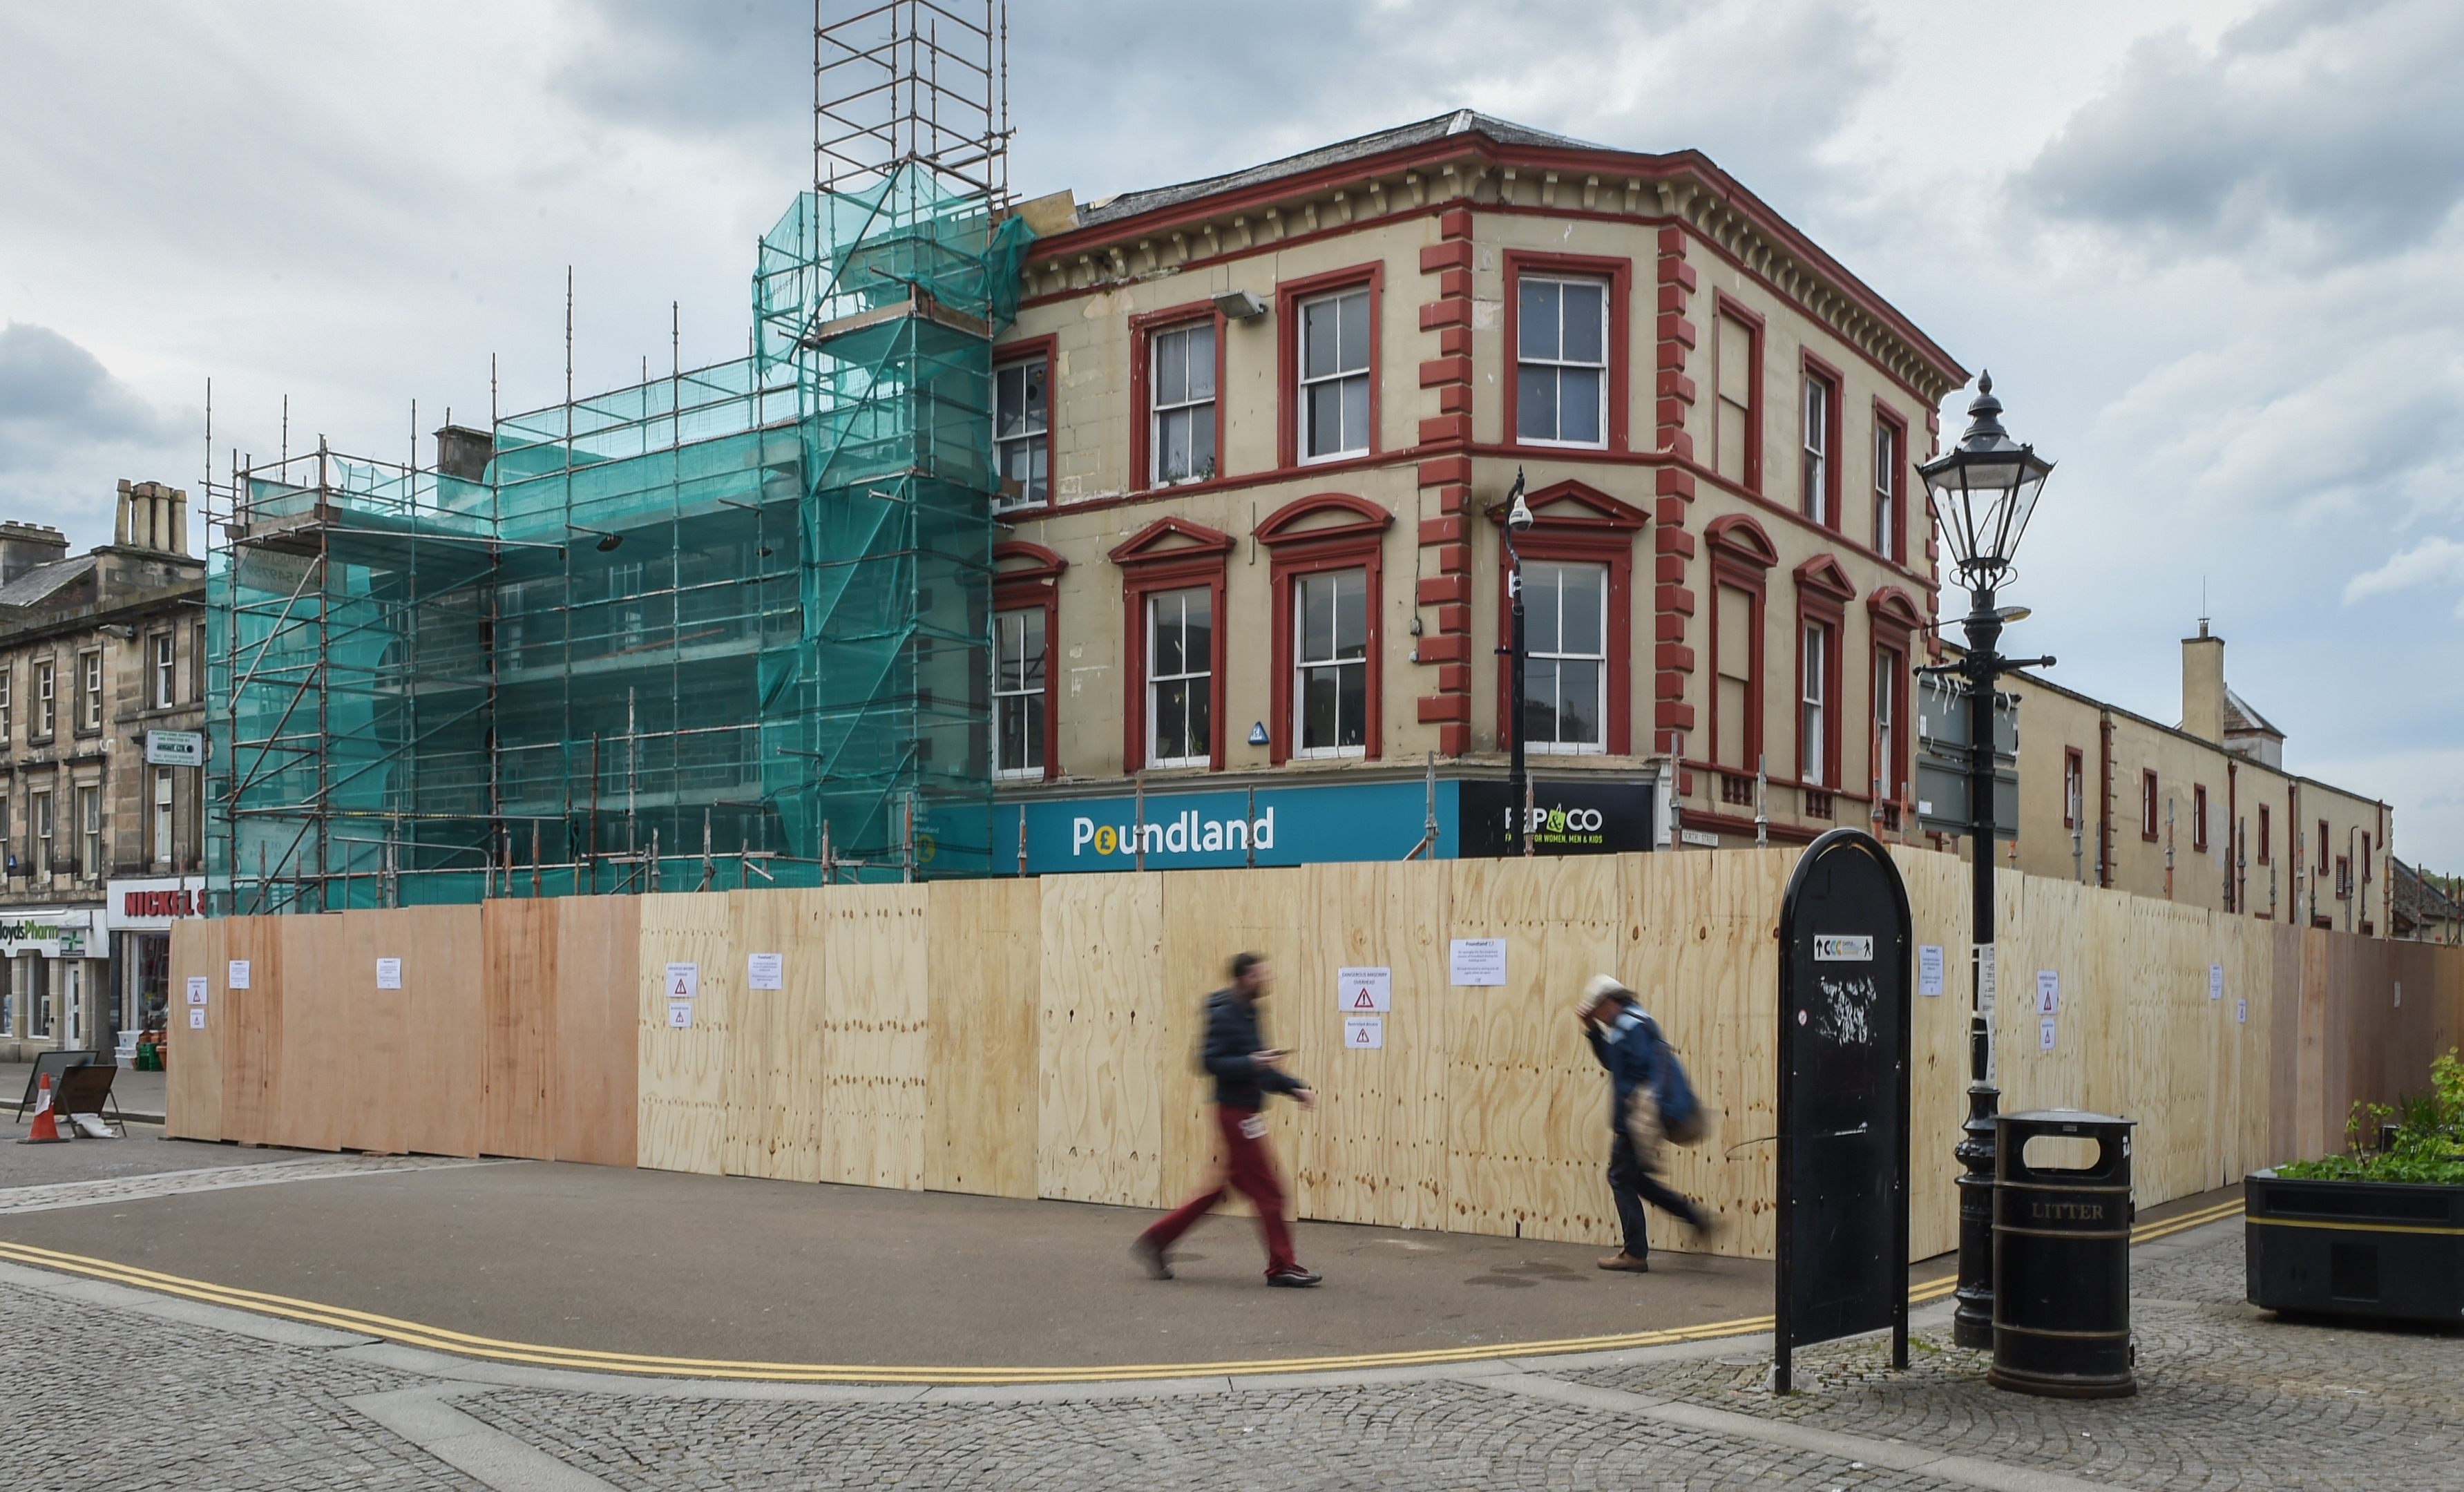 Poundland on High Street was sealed off, with a safety perimeter set up around the former 19th Century bank.